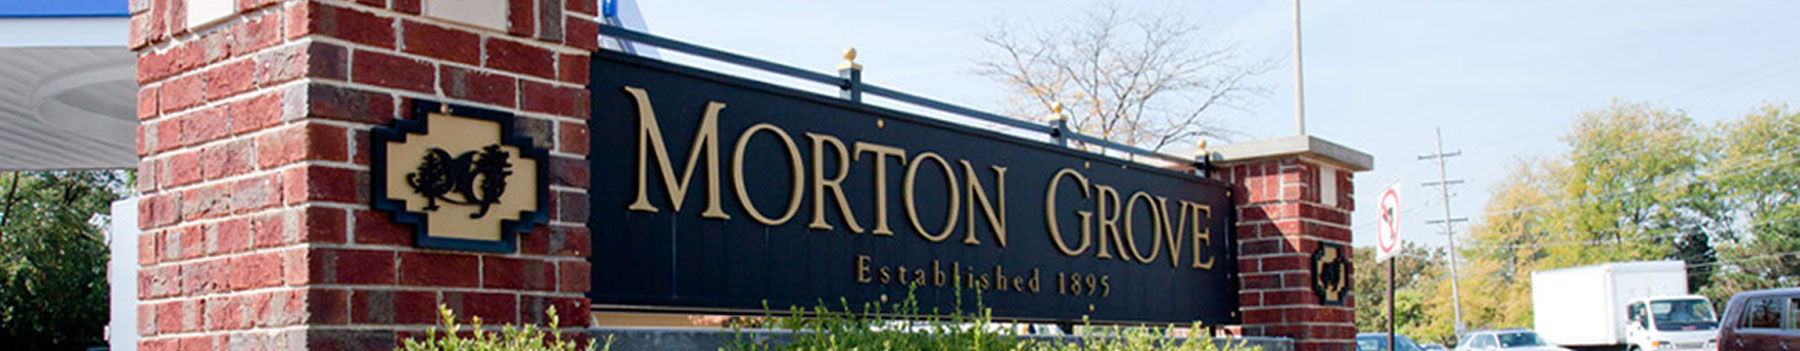 Morton Grove Chamber of Commerce